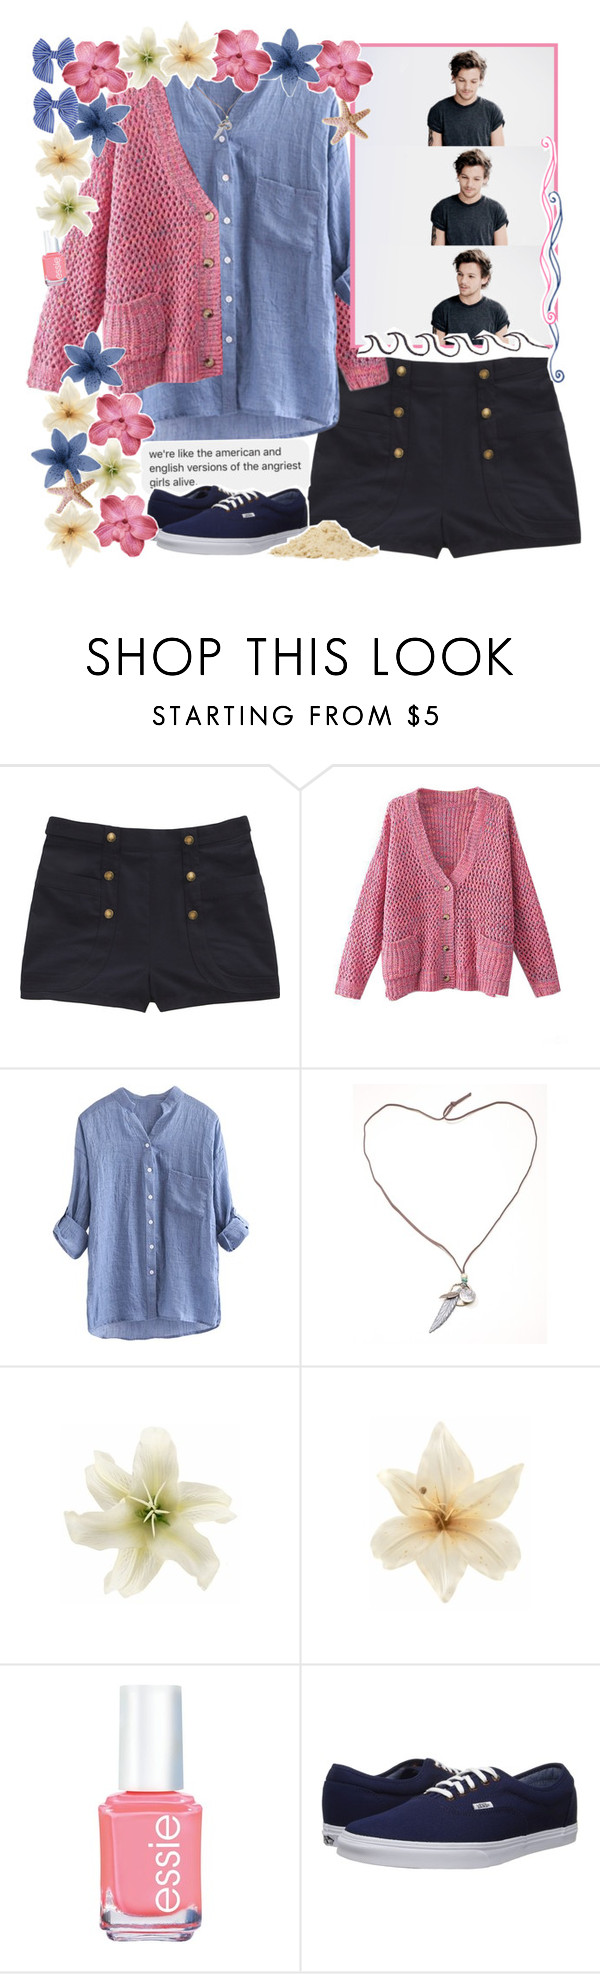 """//oh, show me your love♥"" by tropical-songwriter ❤ liked on Polyvore featuring Opening Ceremony, Chicnova Fashion, Clips, Essie, Vans, Forever 21, Pink, preppy, navy and beige"